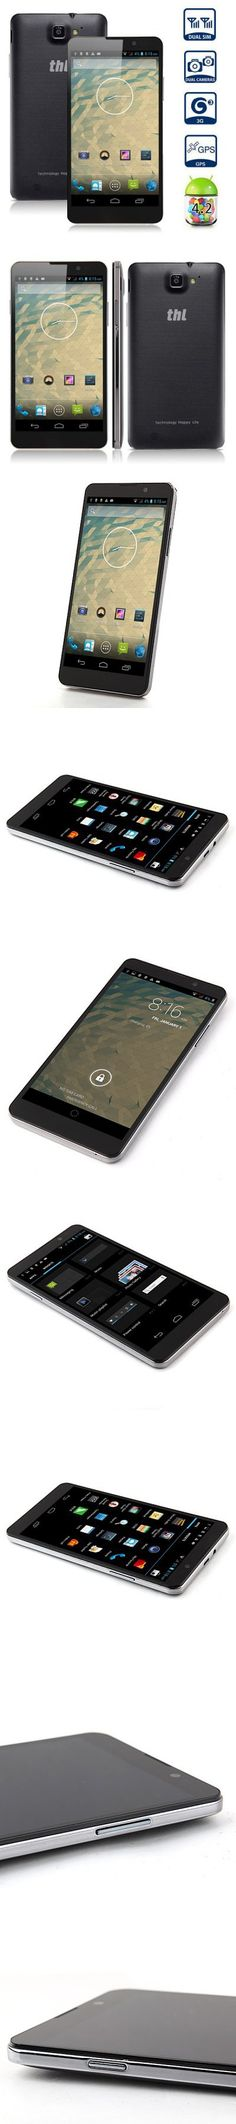 Thl T200 Android 4.2 3G Smartphone with 6.0 inch FHD Screen MTK6592 Octa Core 32GB ROM GPS Bluetooth NFC